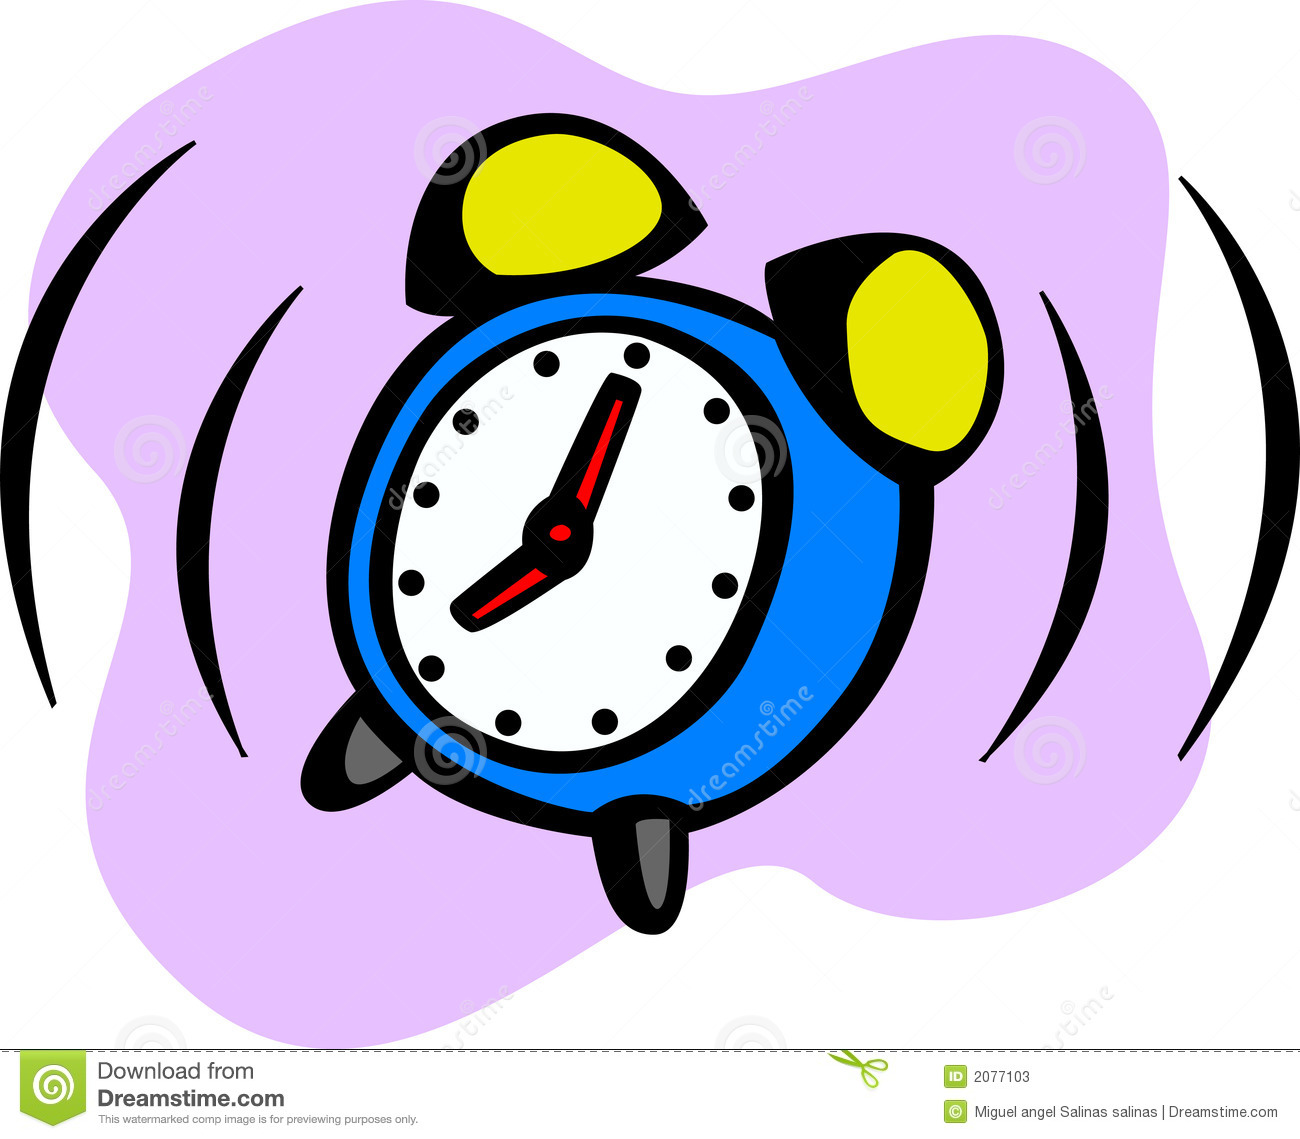 Clock Clipart Black And White   Clipart Panda   Free Clipart Images